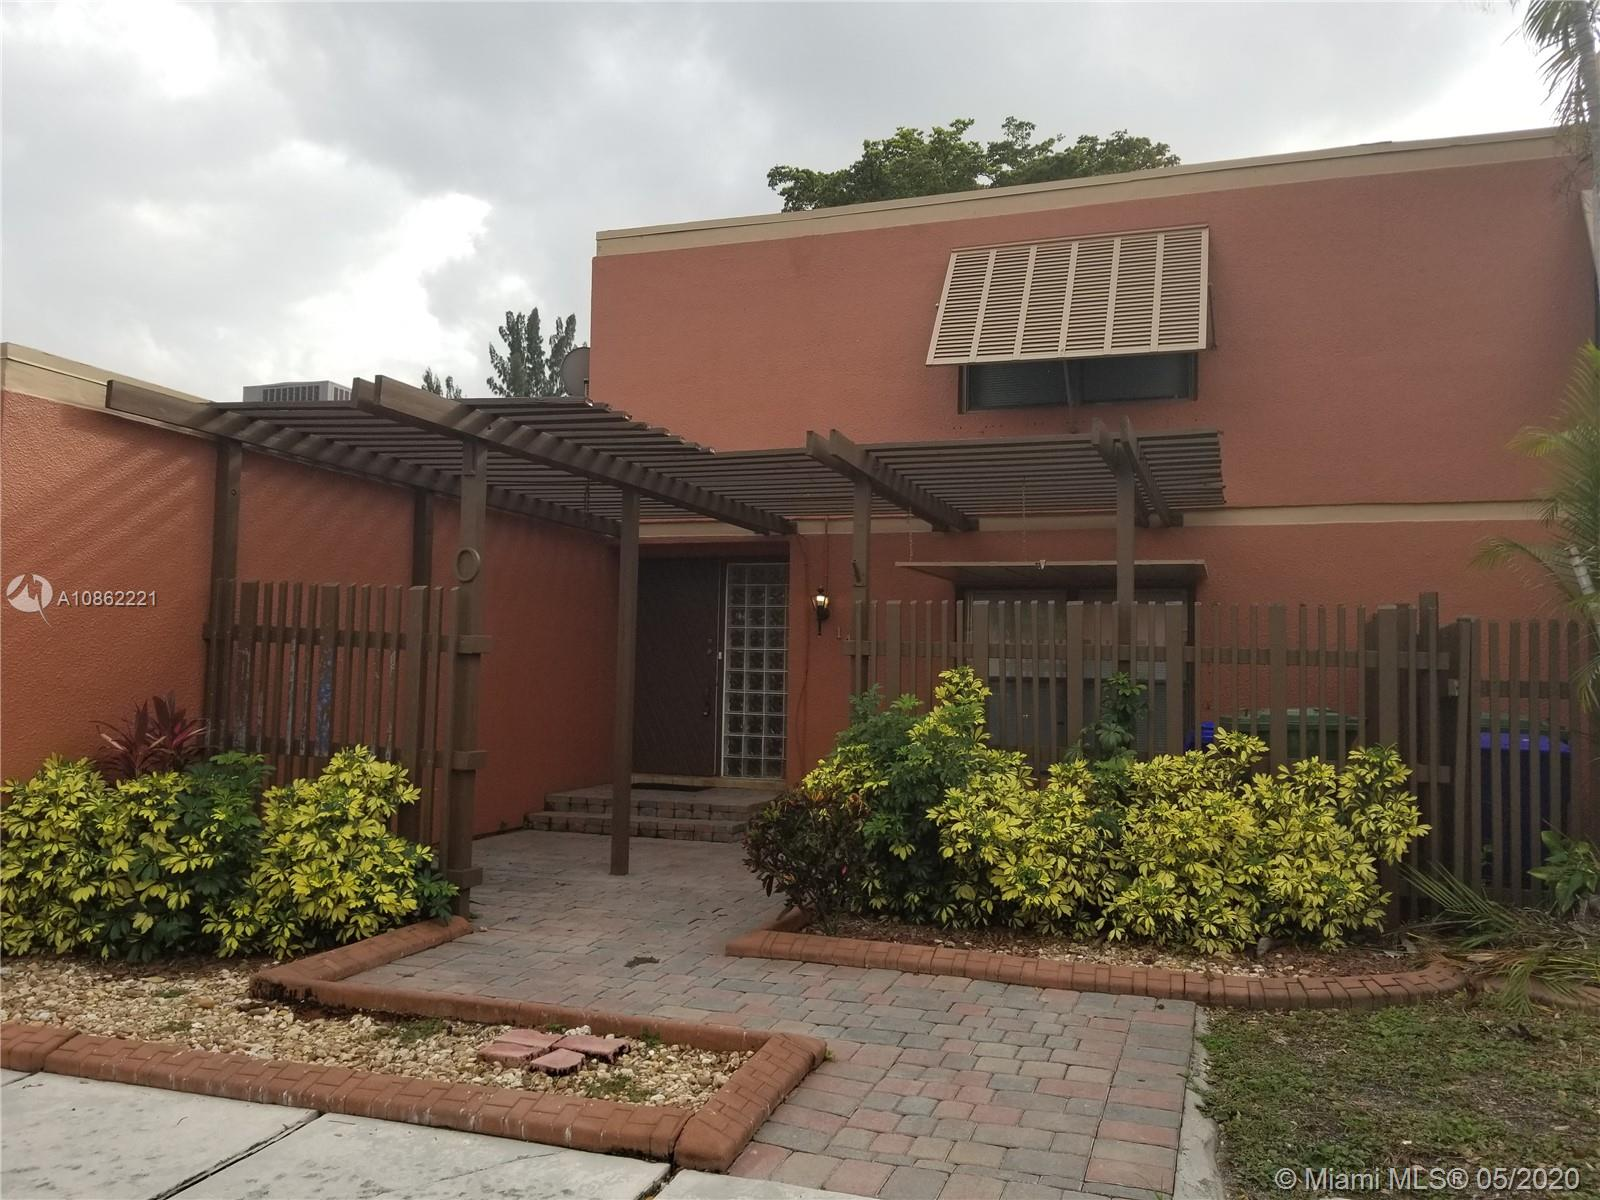 COME SEE THIS PLEASANT 3 BEDROOMS, 2 BATH HOMES LOCATED IN THE HEART OF PEMBROKE PINES. EXCELLENT INVESTMENT OPPORTUNITY. THIS PROPERTY HAS PLENTY OF POTENTIAL. PRICE TO SELL. SCHEDULE YOUR PRIVATE OR VIRTUAL TOUR BEFORE IS GONE.